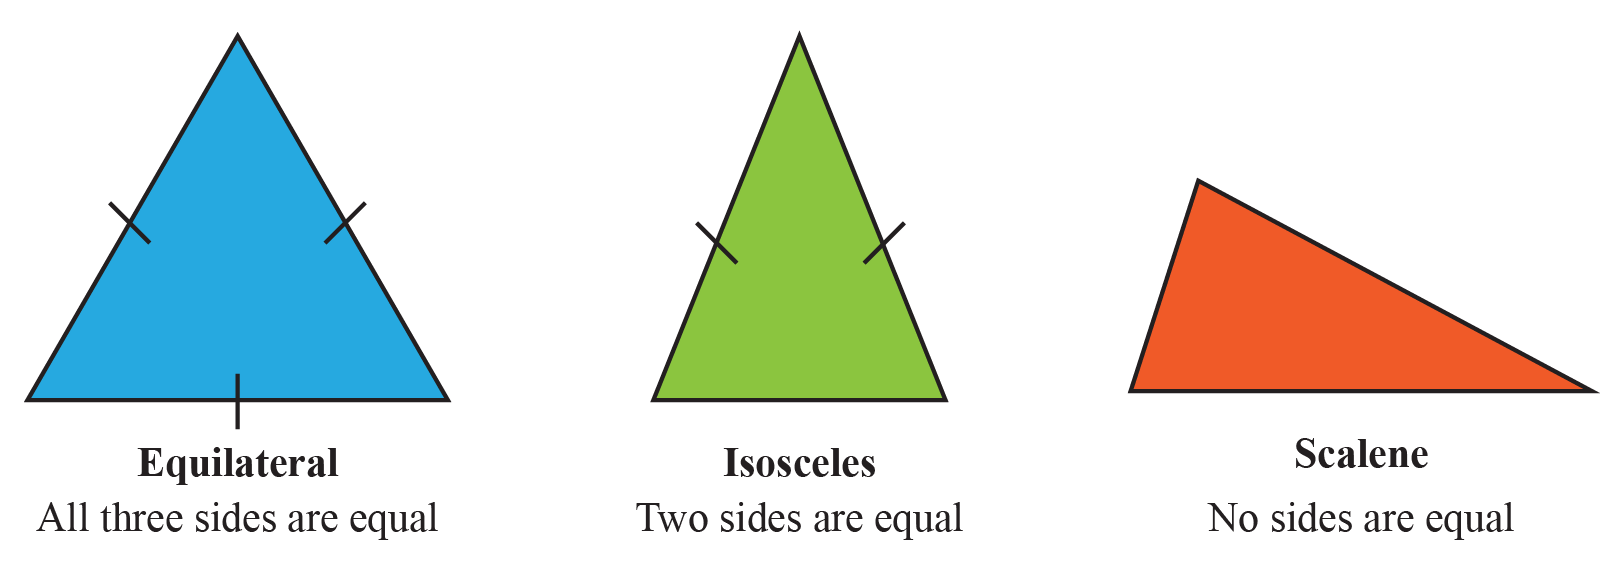 Triangles by sides